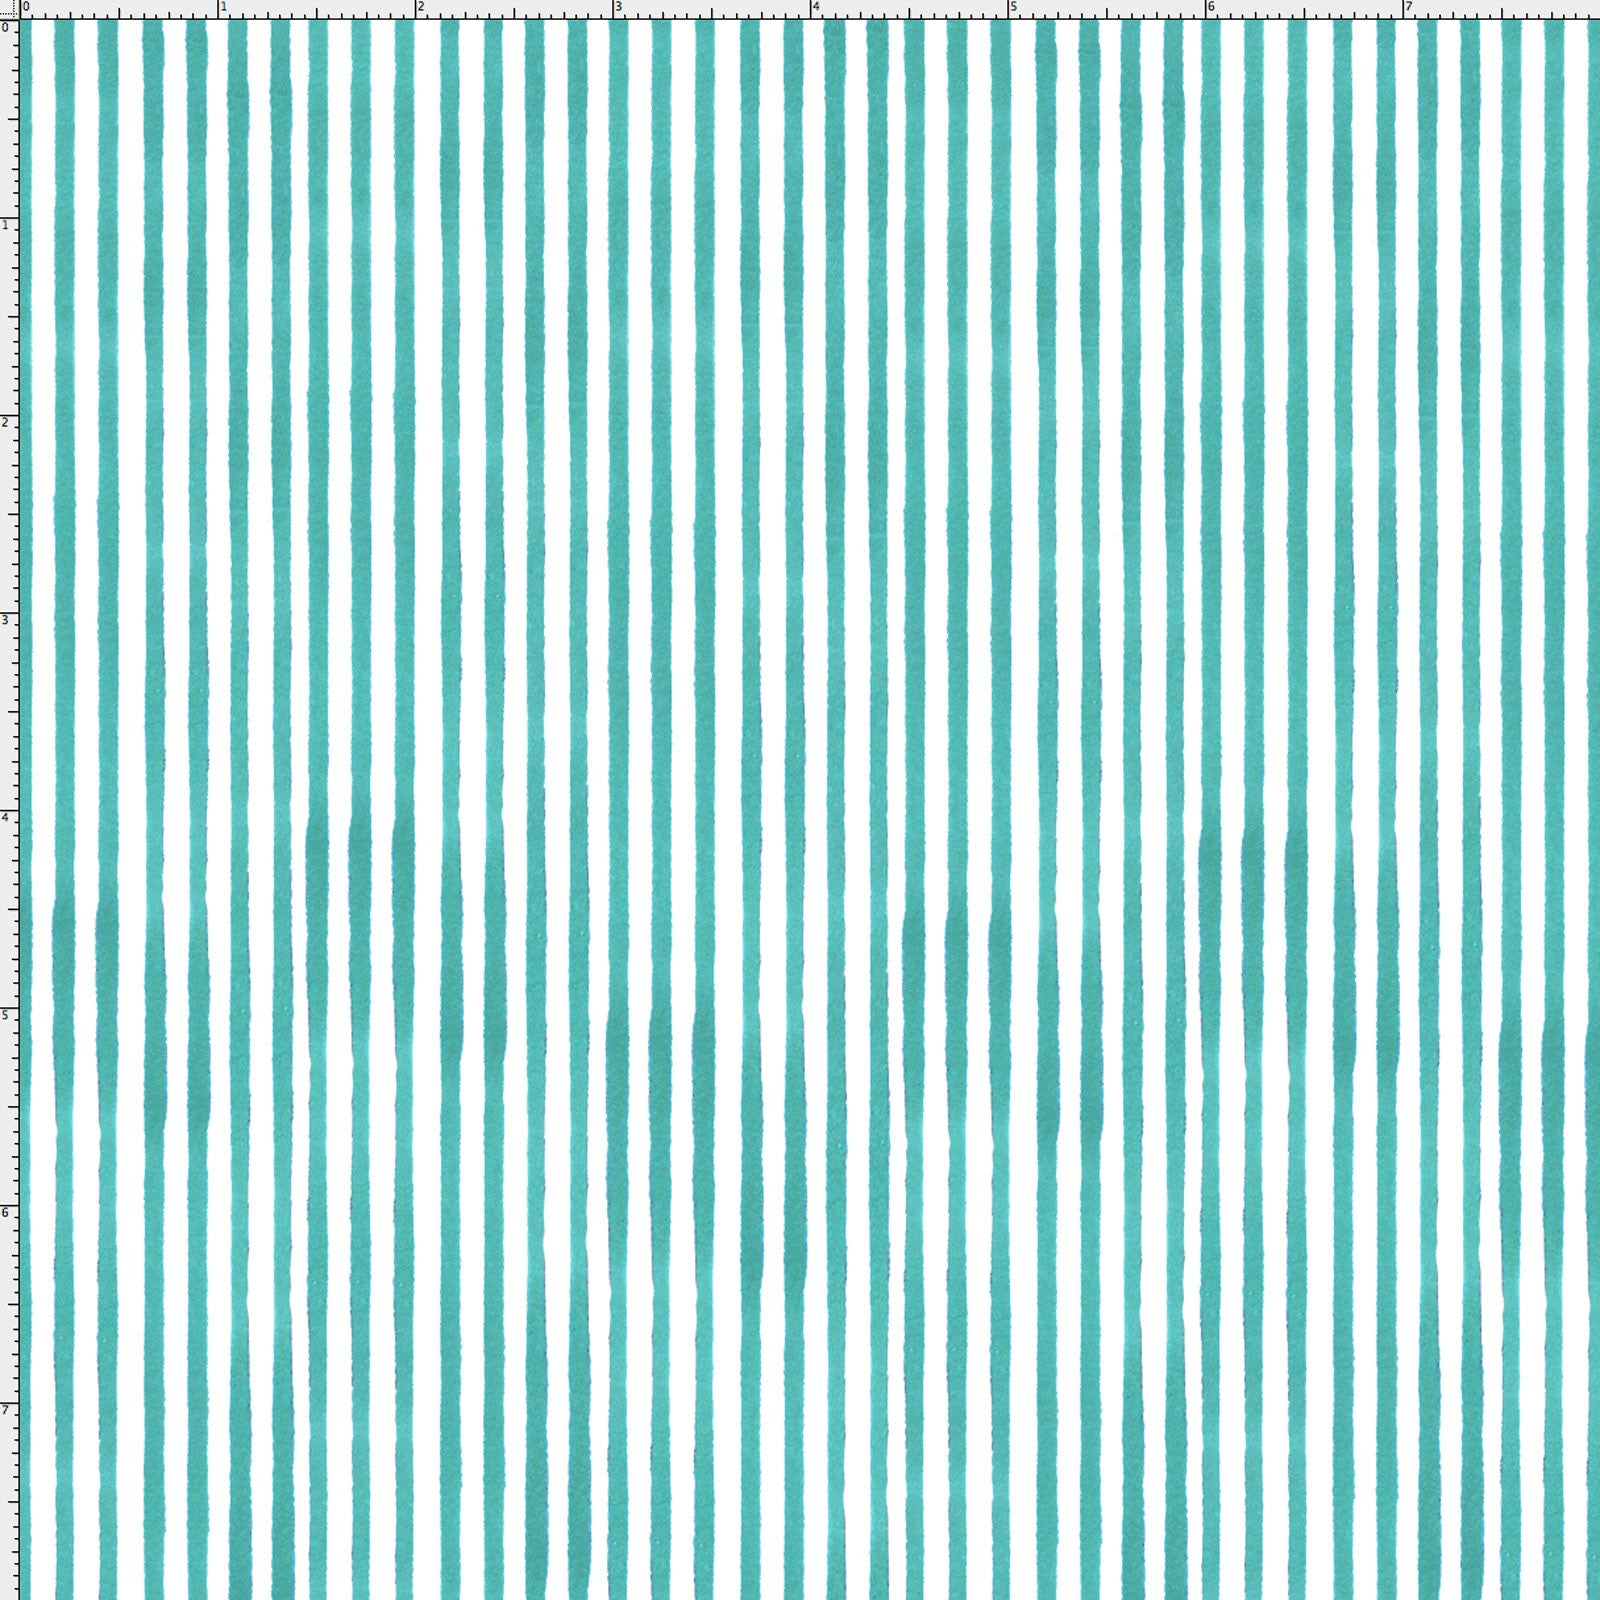 Lazy Stripe Turquoise / White Fabric